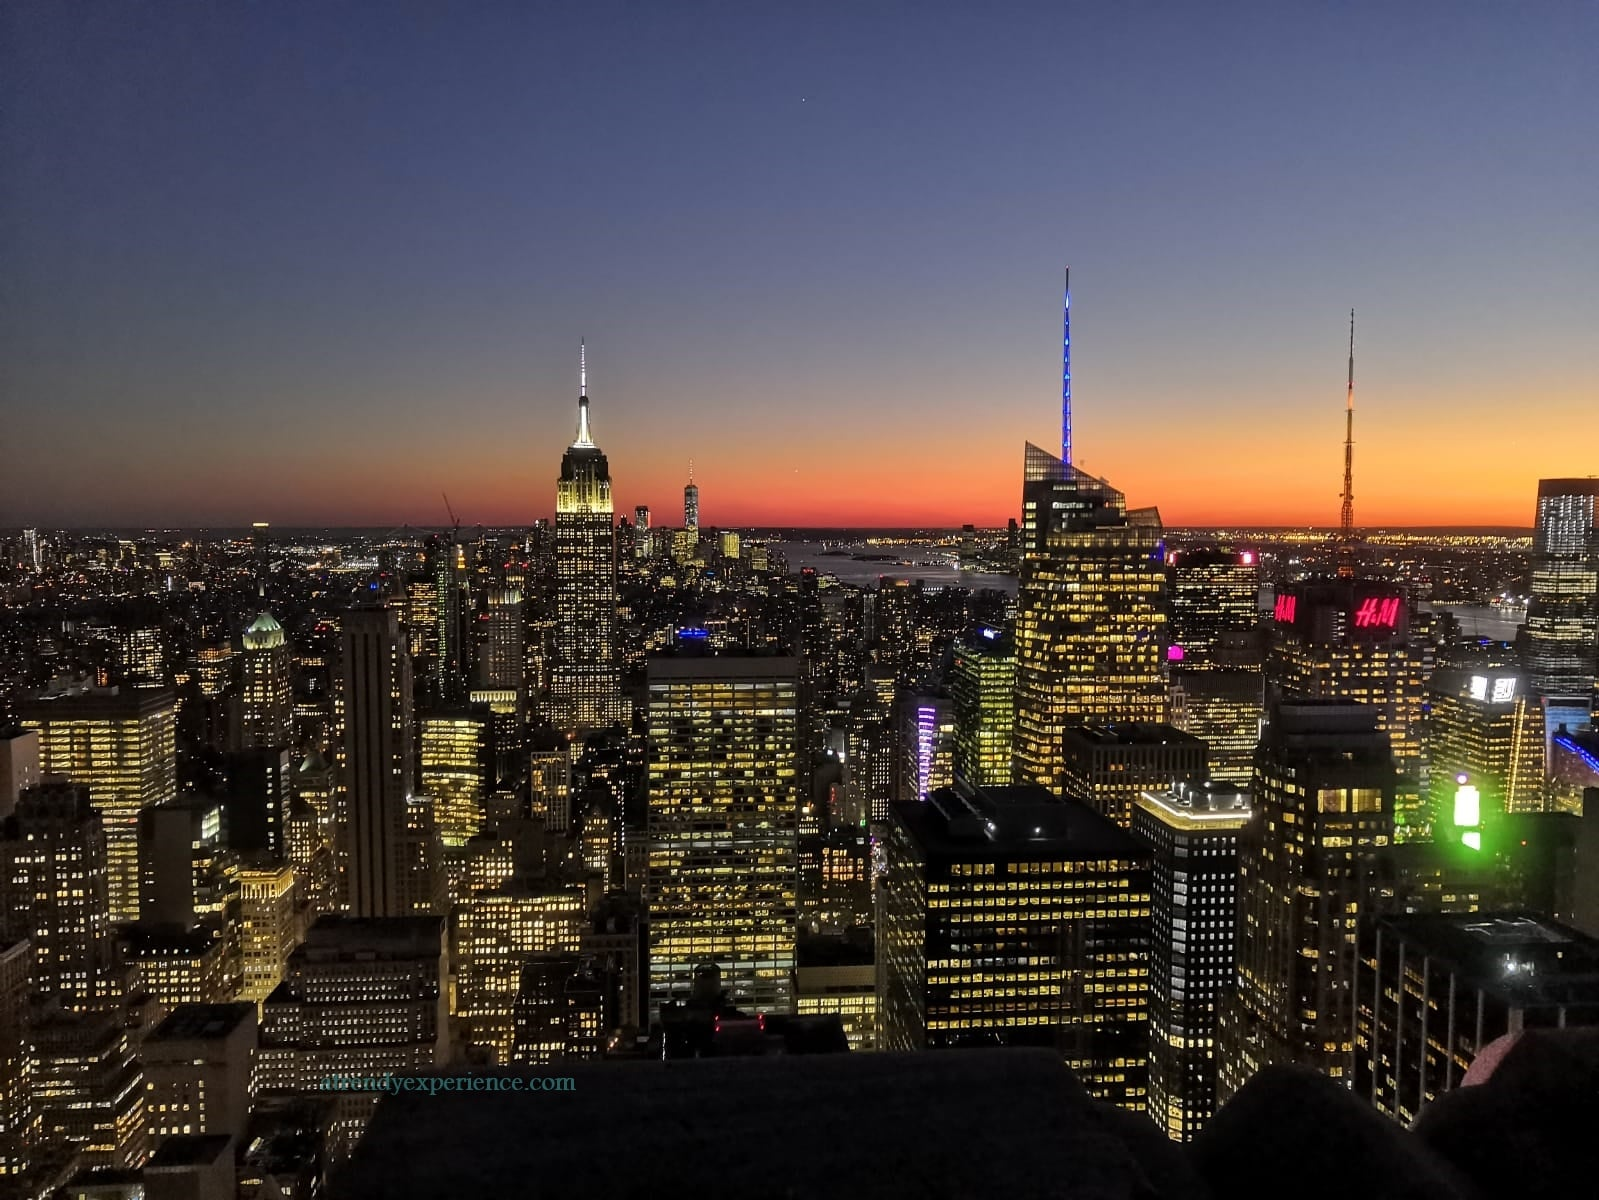 tramonto a New York City visto dal TOP OF THE ROCK